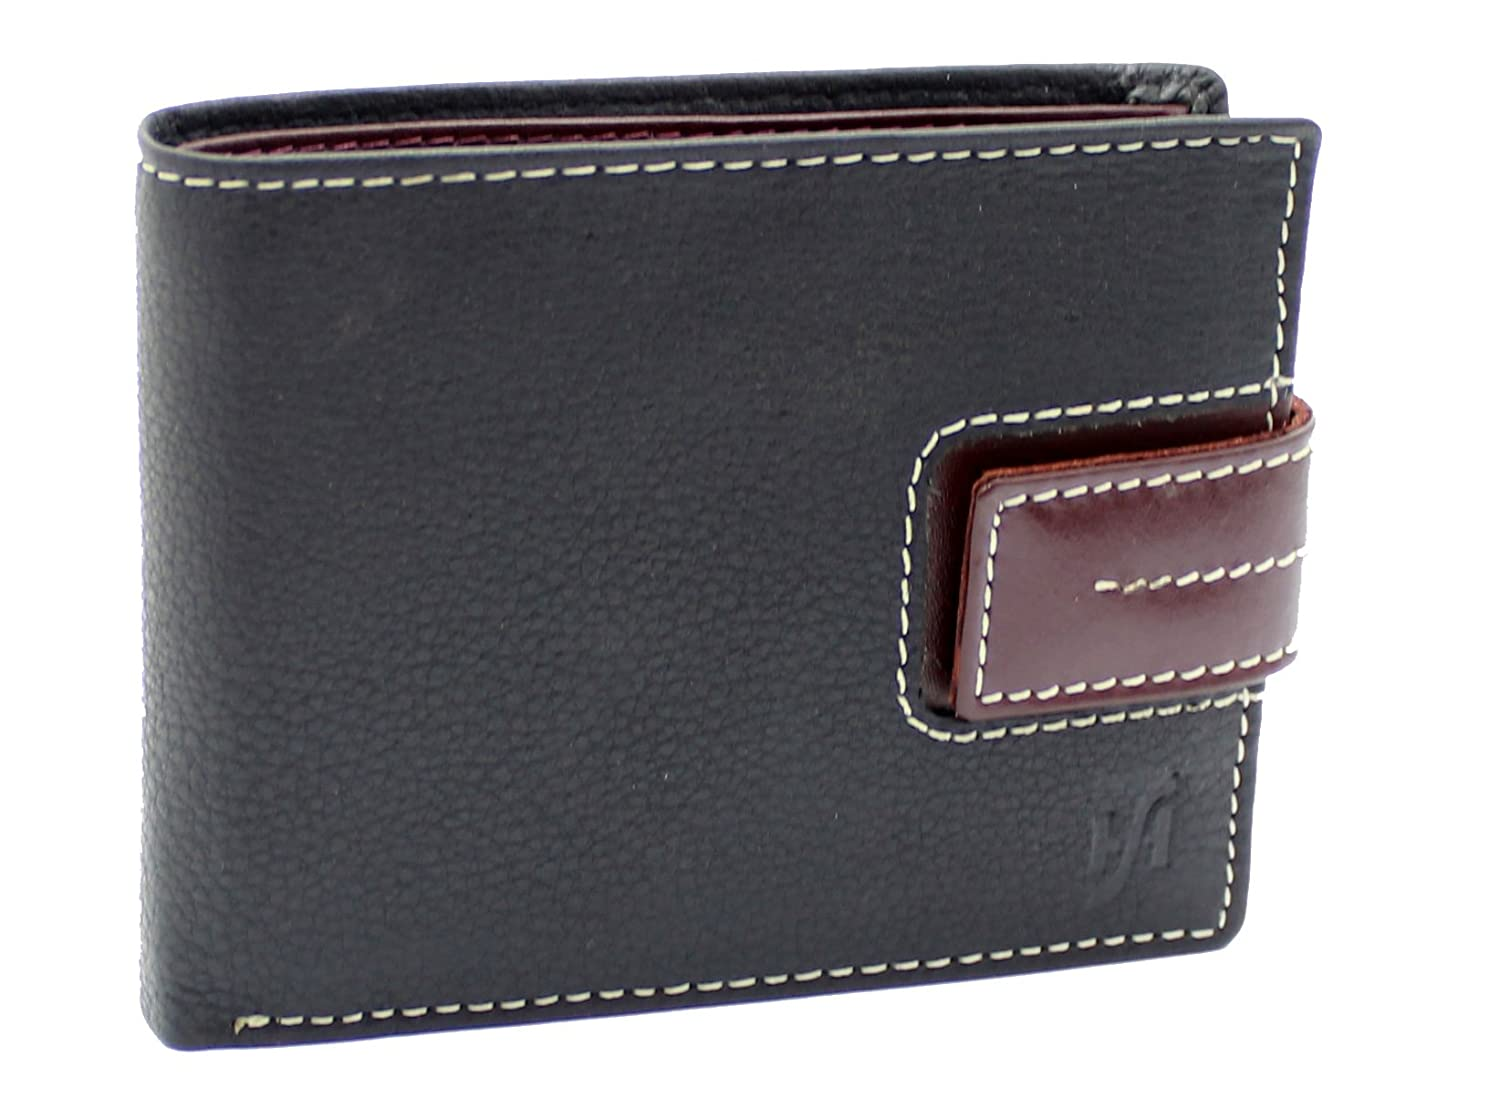 Mens RFID Blocking Soft Leather Flip Up ID Pocket Wallet Black Brown